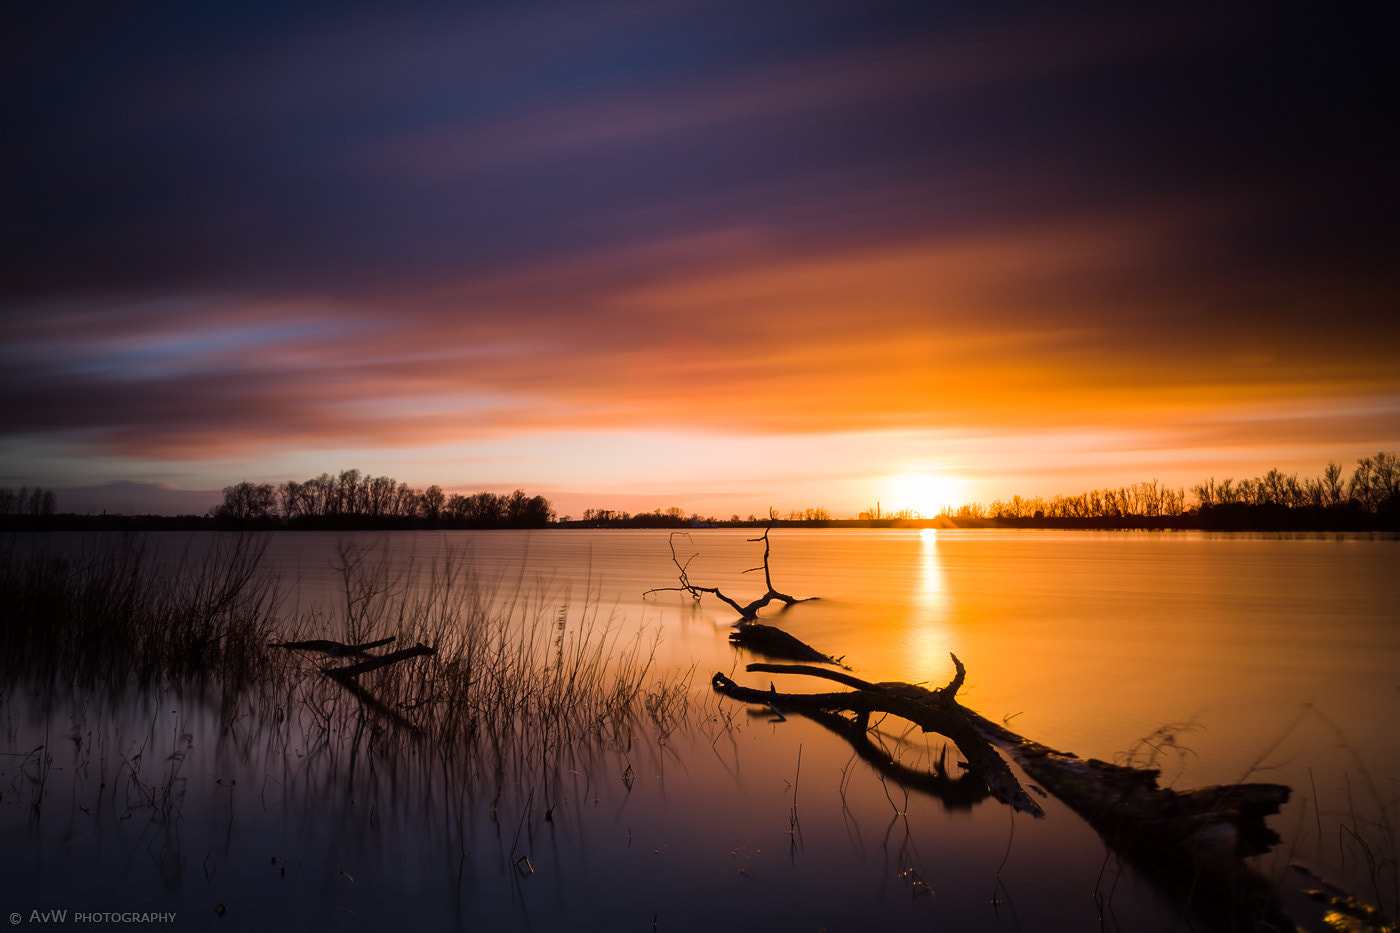 Photograph Sunset @ Bemmelse Waard by Arnold van Wijk on 500px